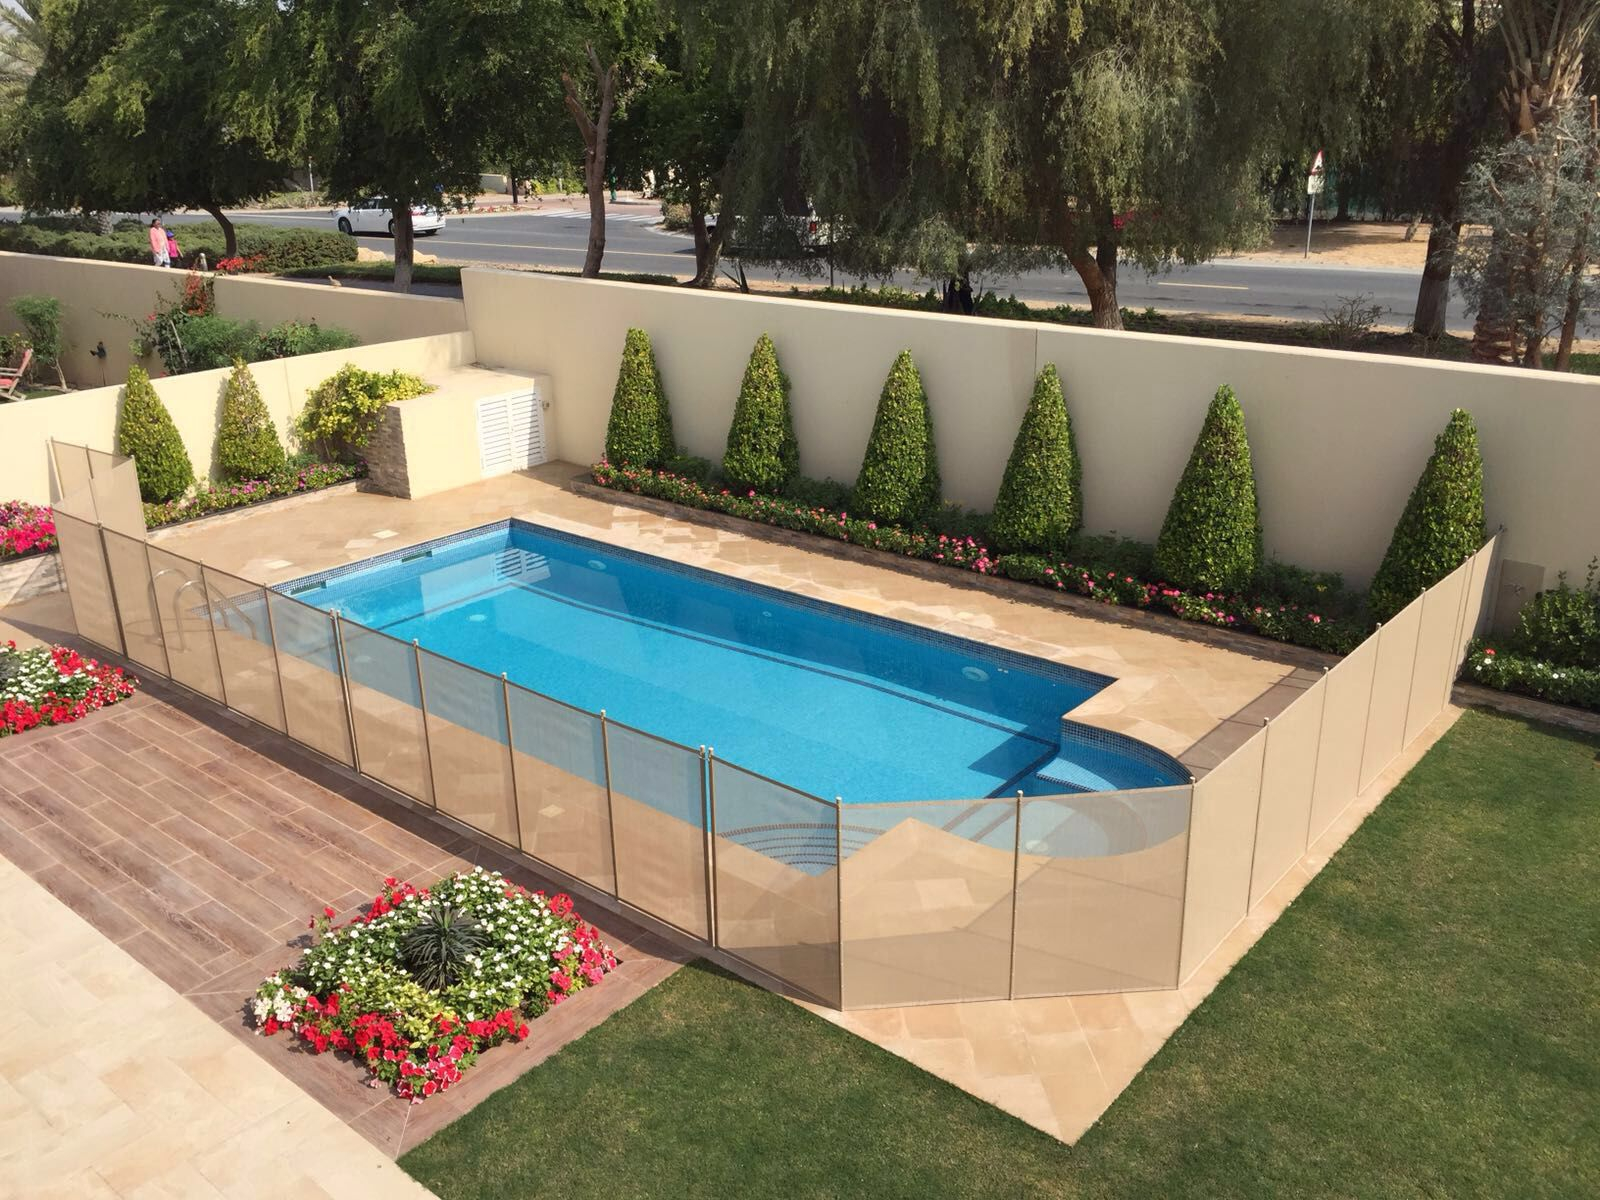 Pool Safety Fence Diy Kit For Inground Pools Fence Ideas Site